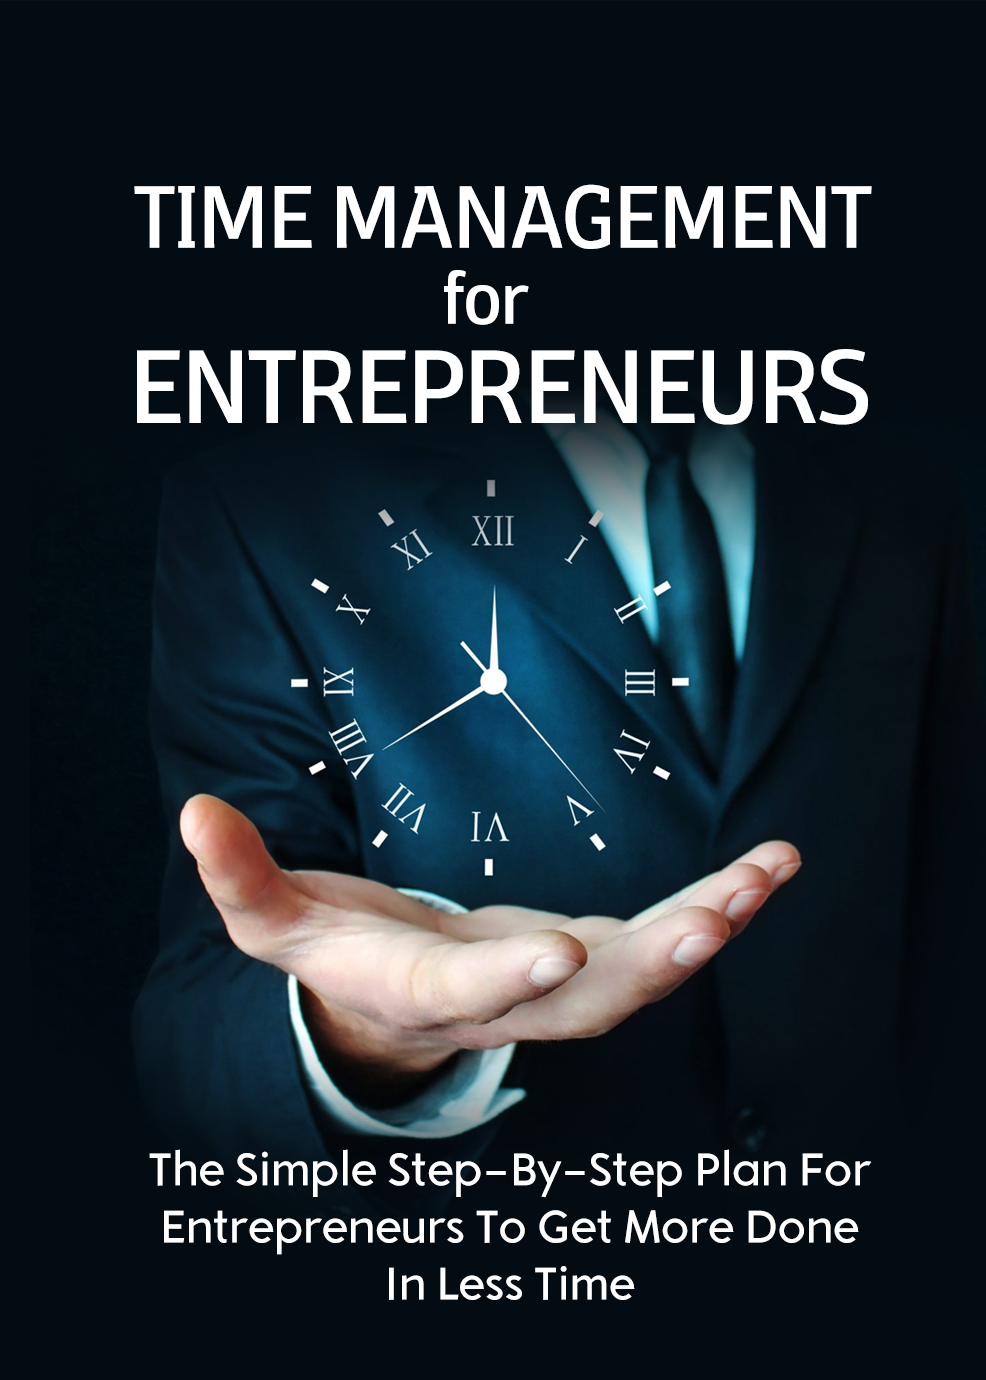 Time Management For Entrepreneurs (The Step-by-Step Plan For Entrepreneurs To Get More Done In Less Time) Ebook's Ebook Image